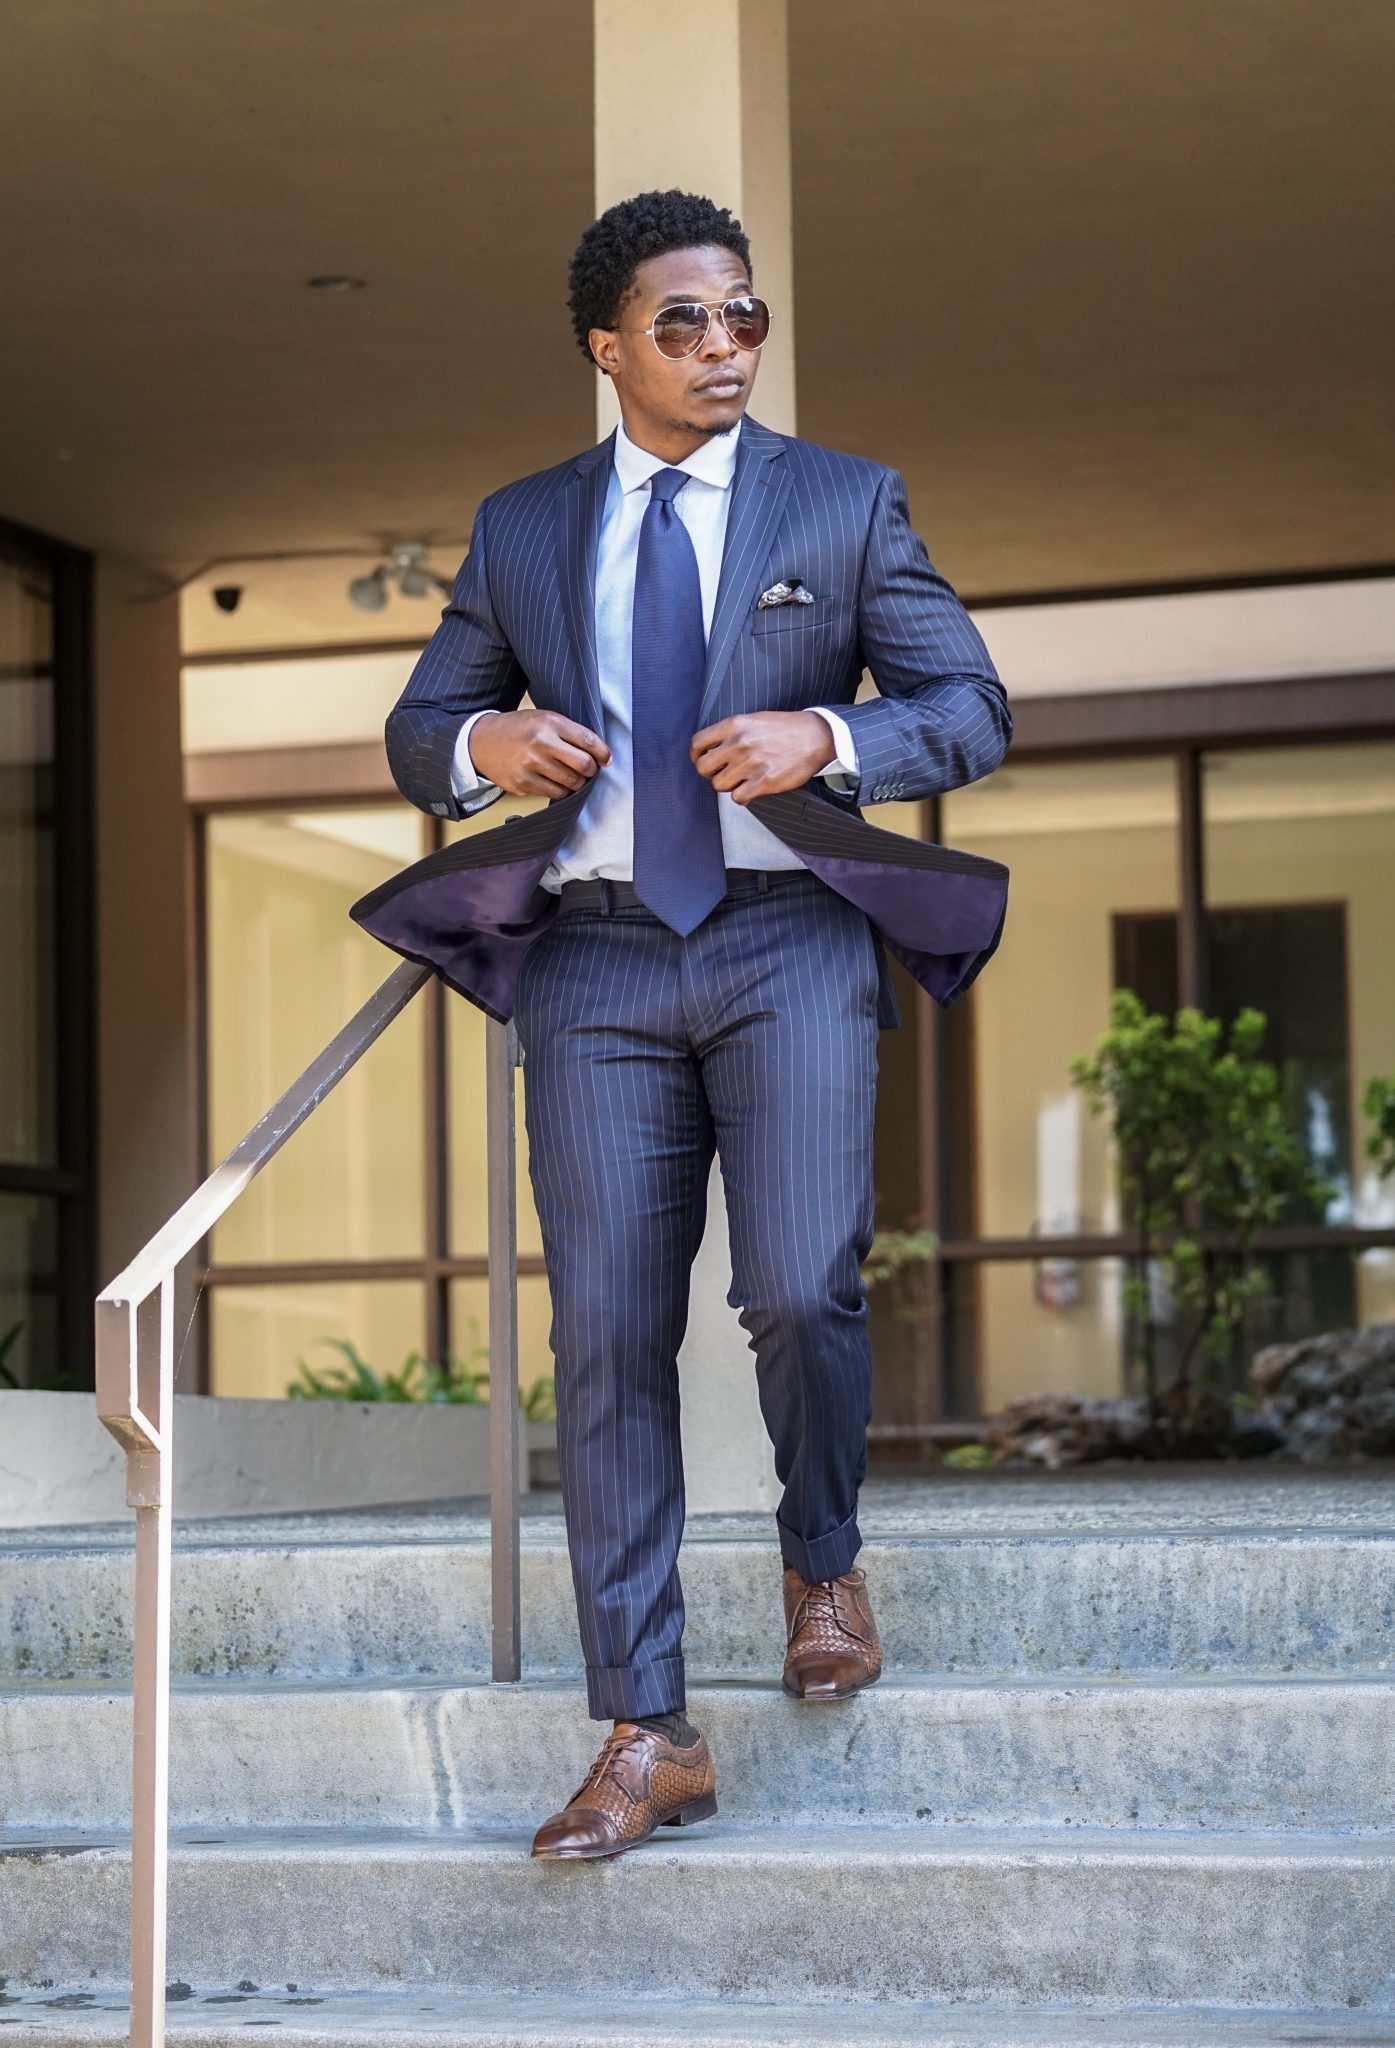 dress like a boss-black-man-wearing-navy-pinstripe-suit-business-attire-2